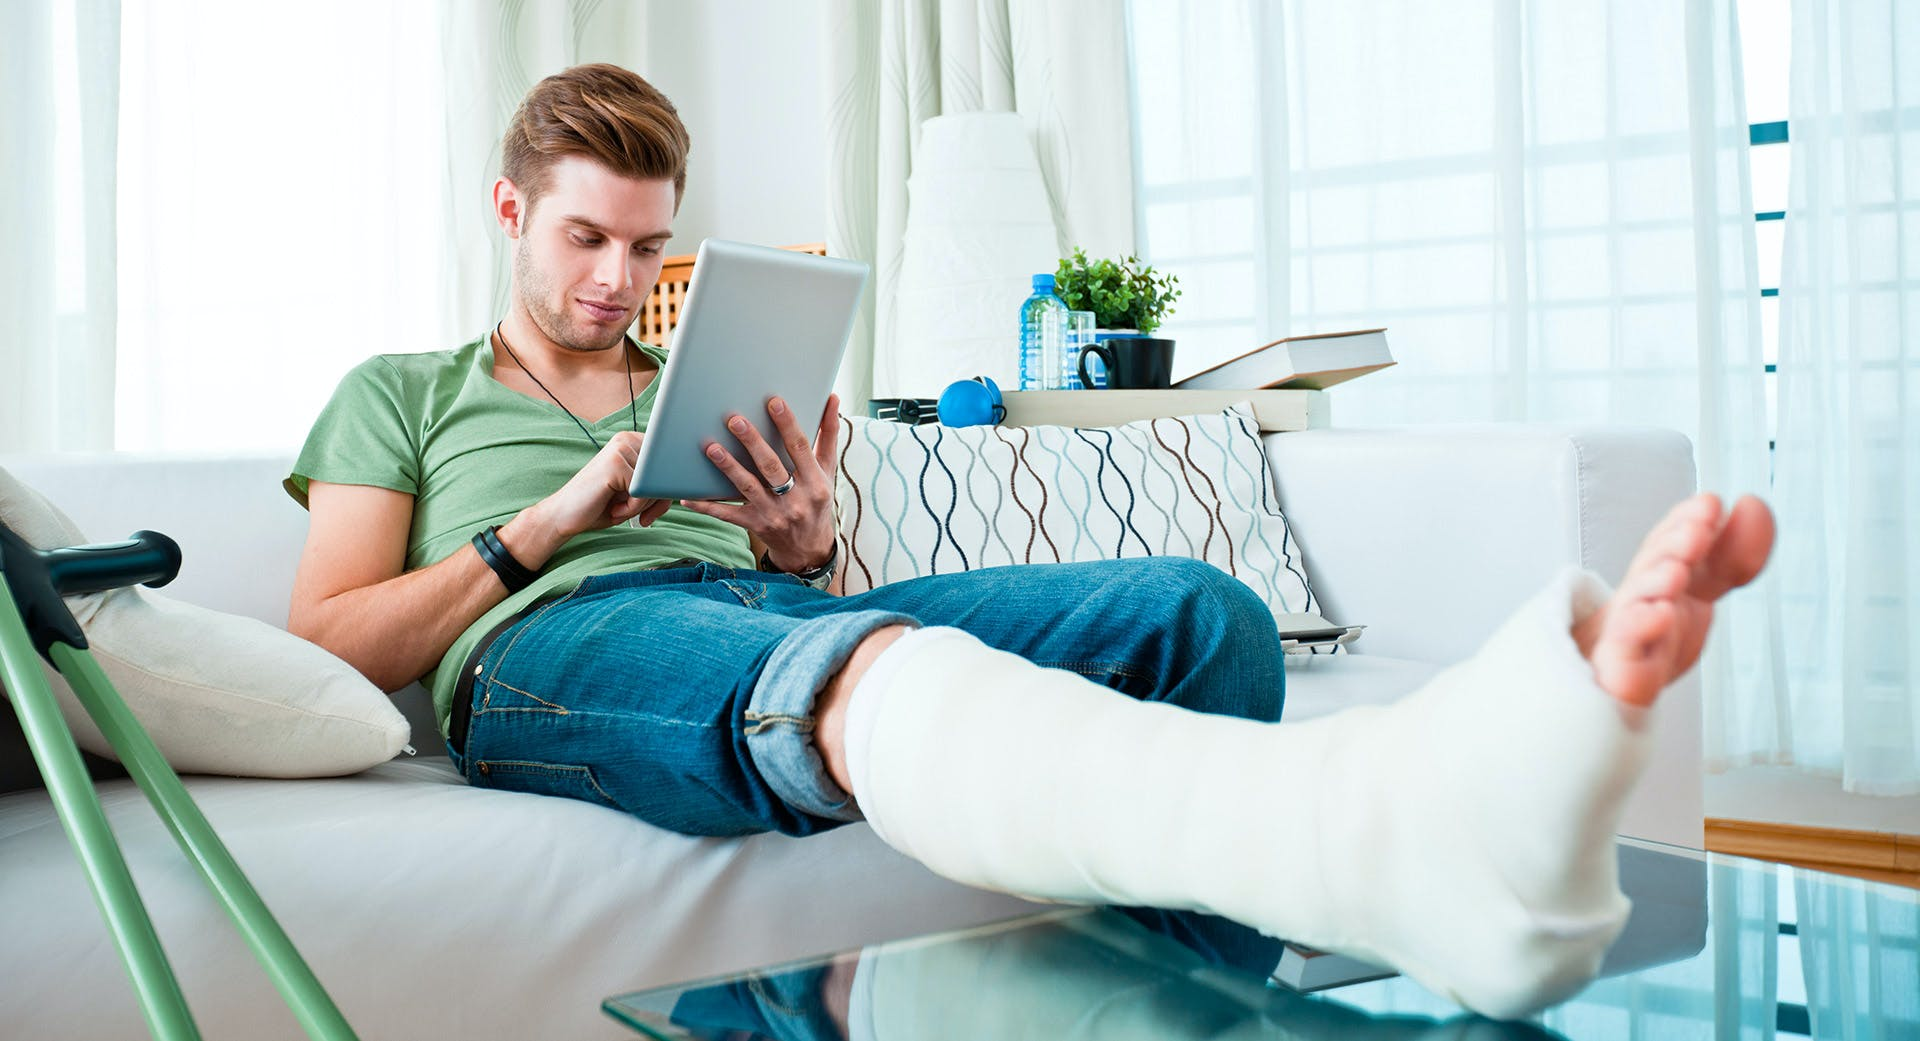 Injured man with lower leg cast resting on coffee table